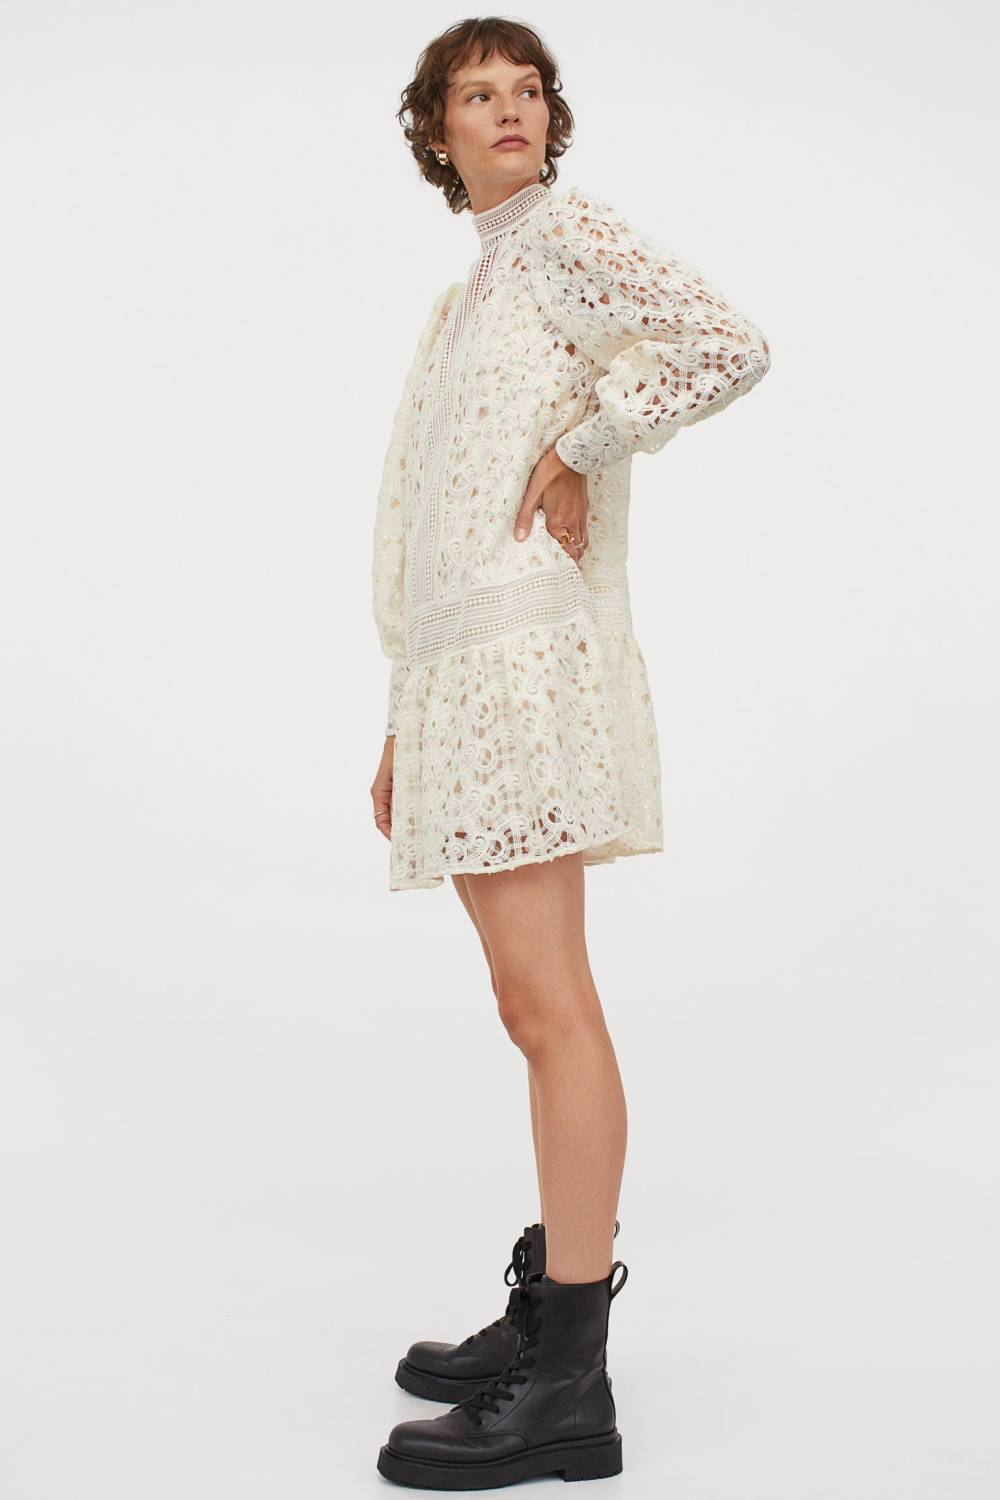 h&m recycled polyester lace dress